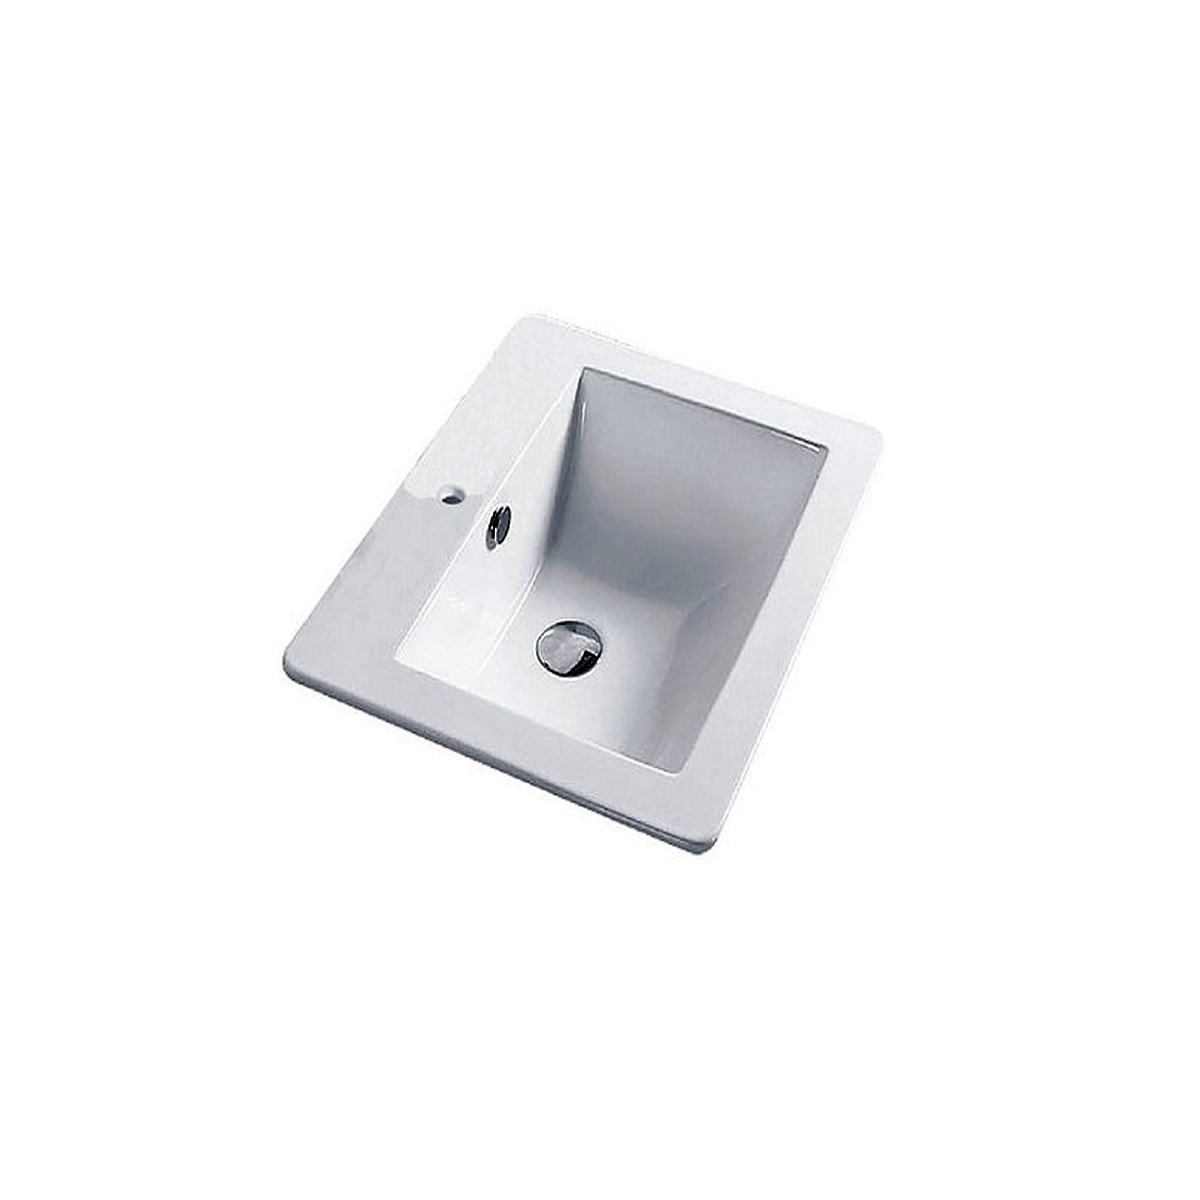 Inspire IS7050 Inset Basin